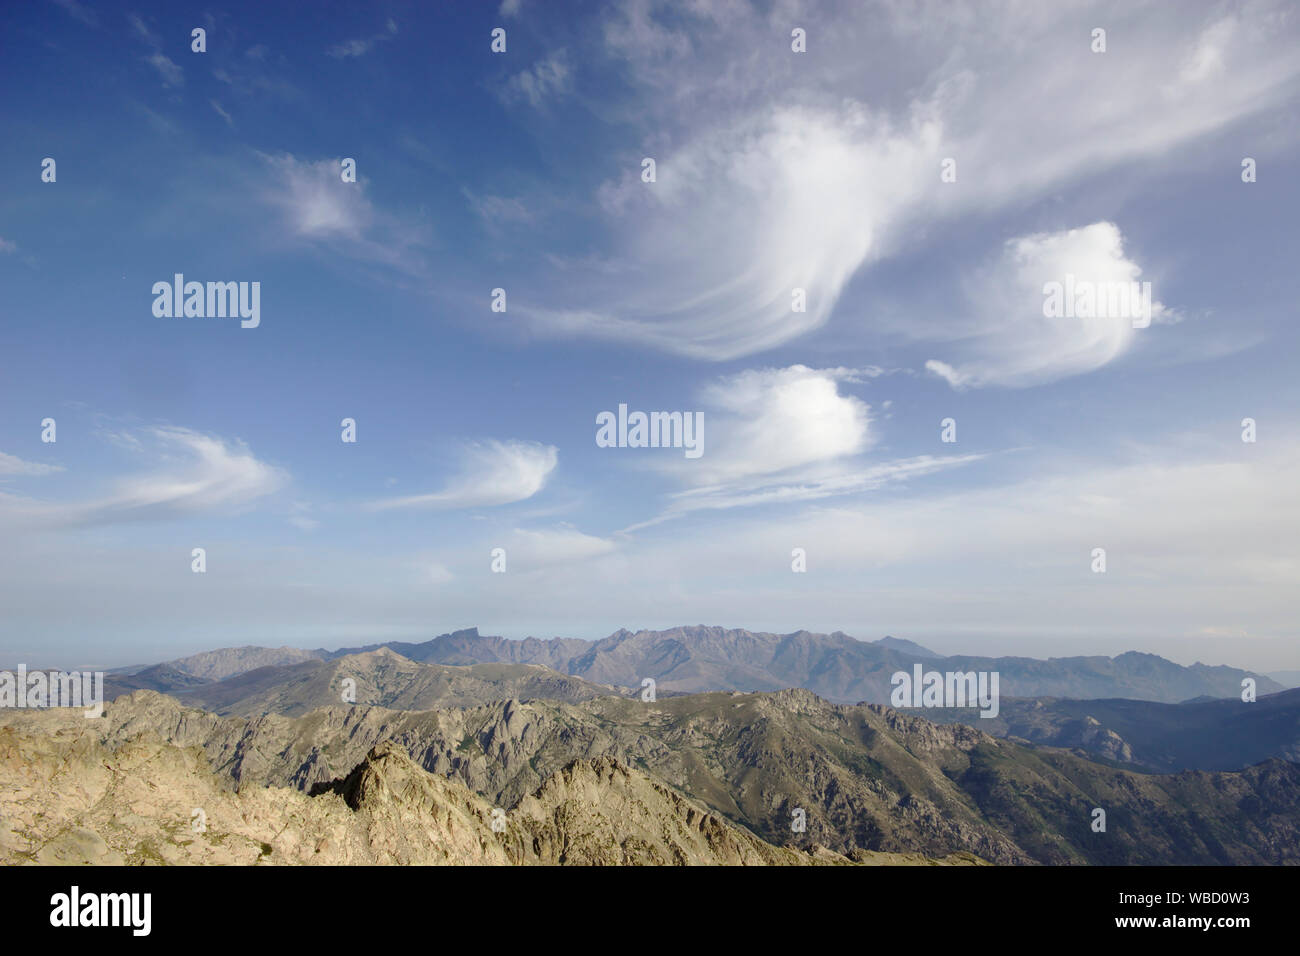 clouds over corsica, view from Monte Rotondo to Paglia Orba and Monte Cinto, France, Corsica Stock Photo